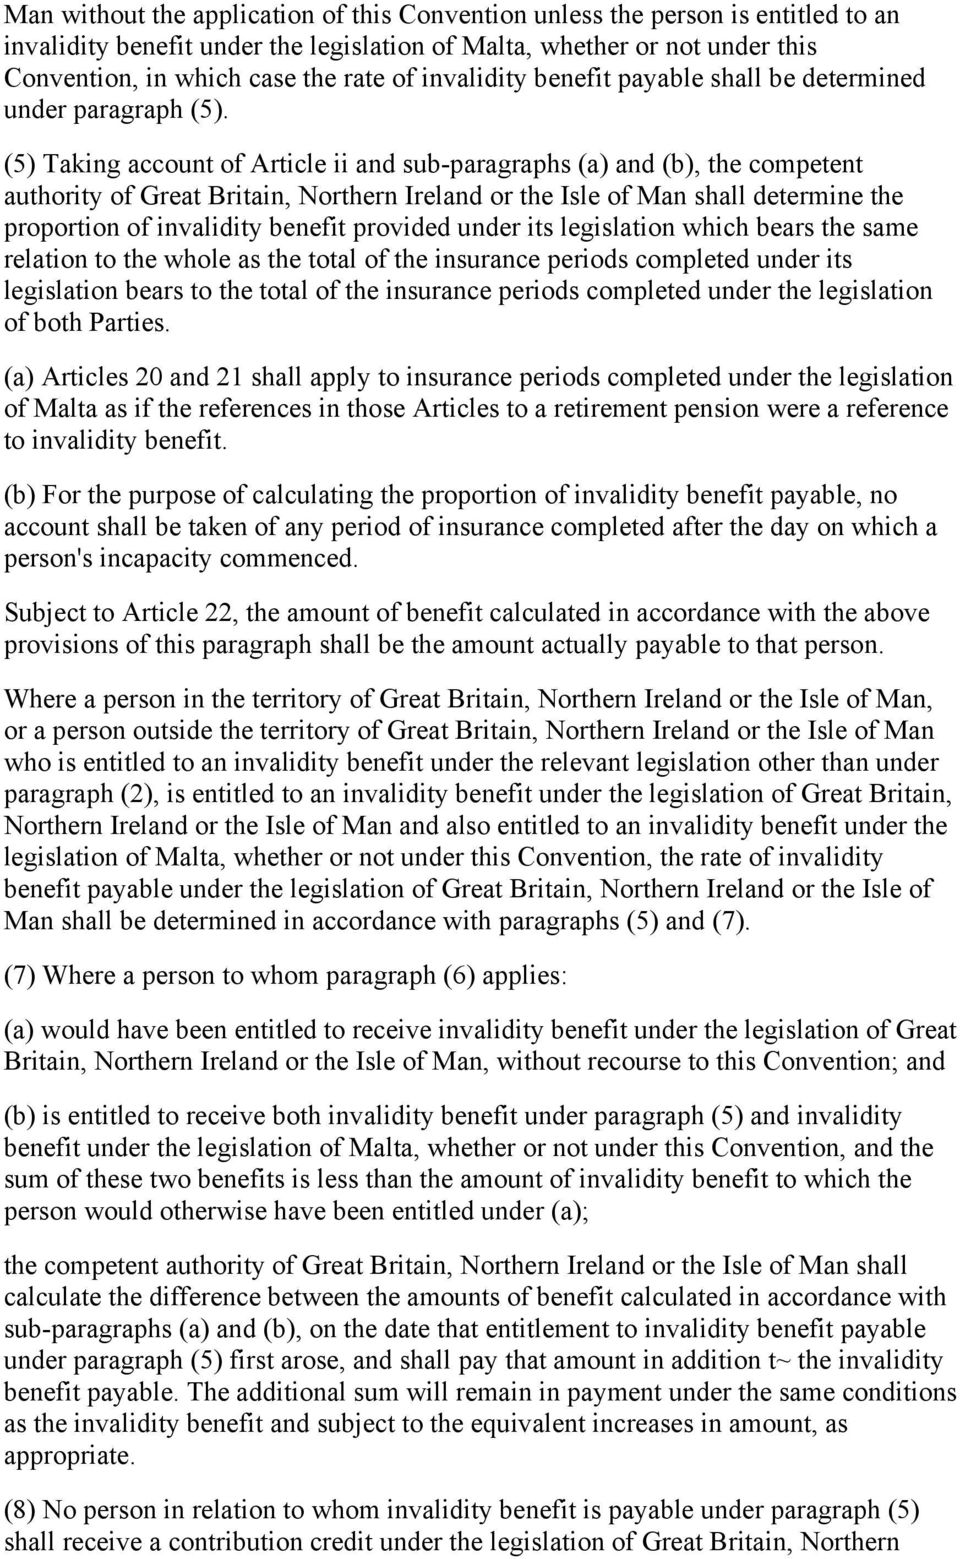 (5) Taking account of Article ii and sub-paragraphs (a) and (b), the competent authority of Great Britain, Northern Ireland or the Isle of Man shall determine the proportion of invalidity benefit